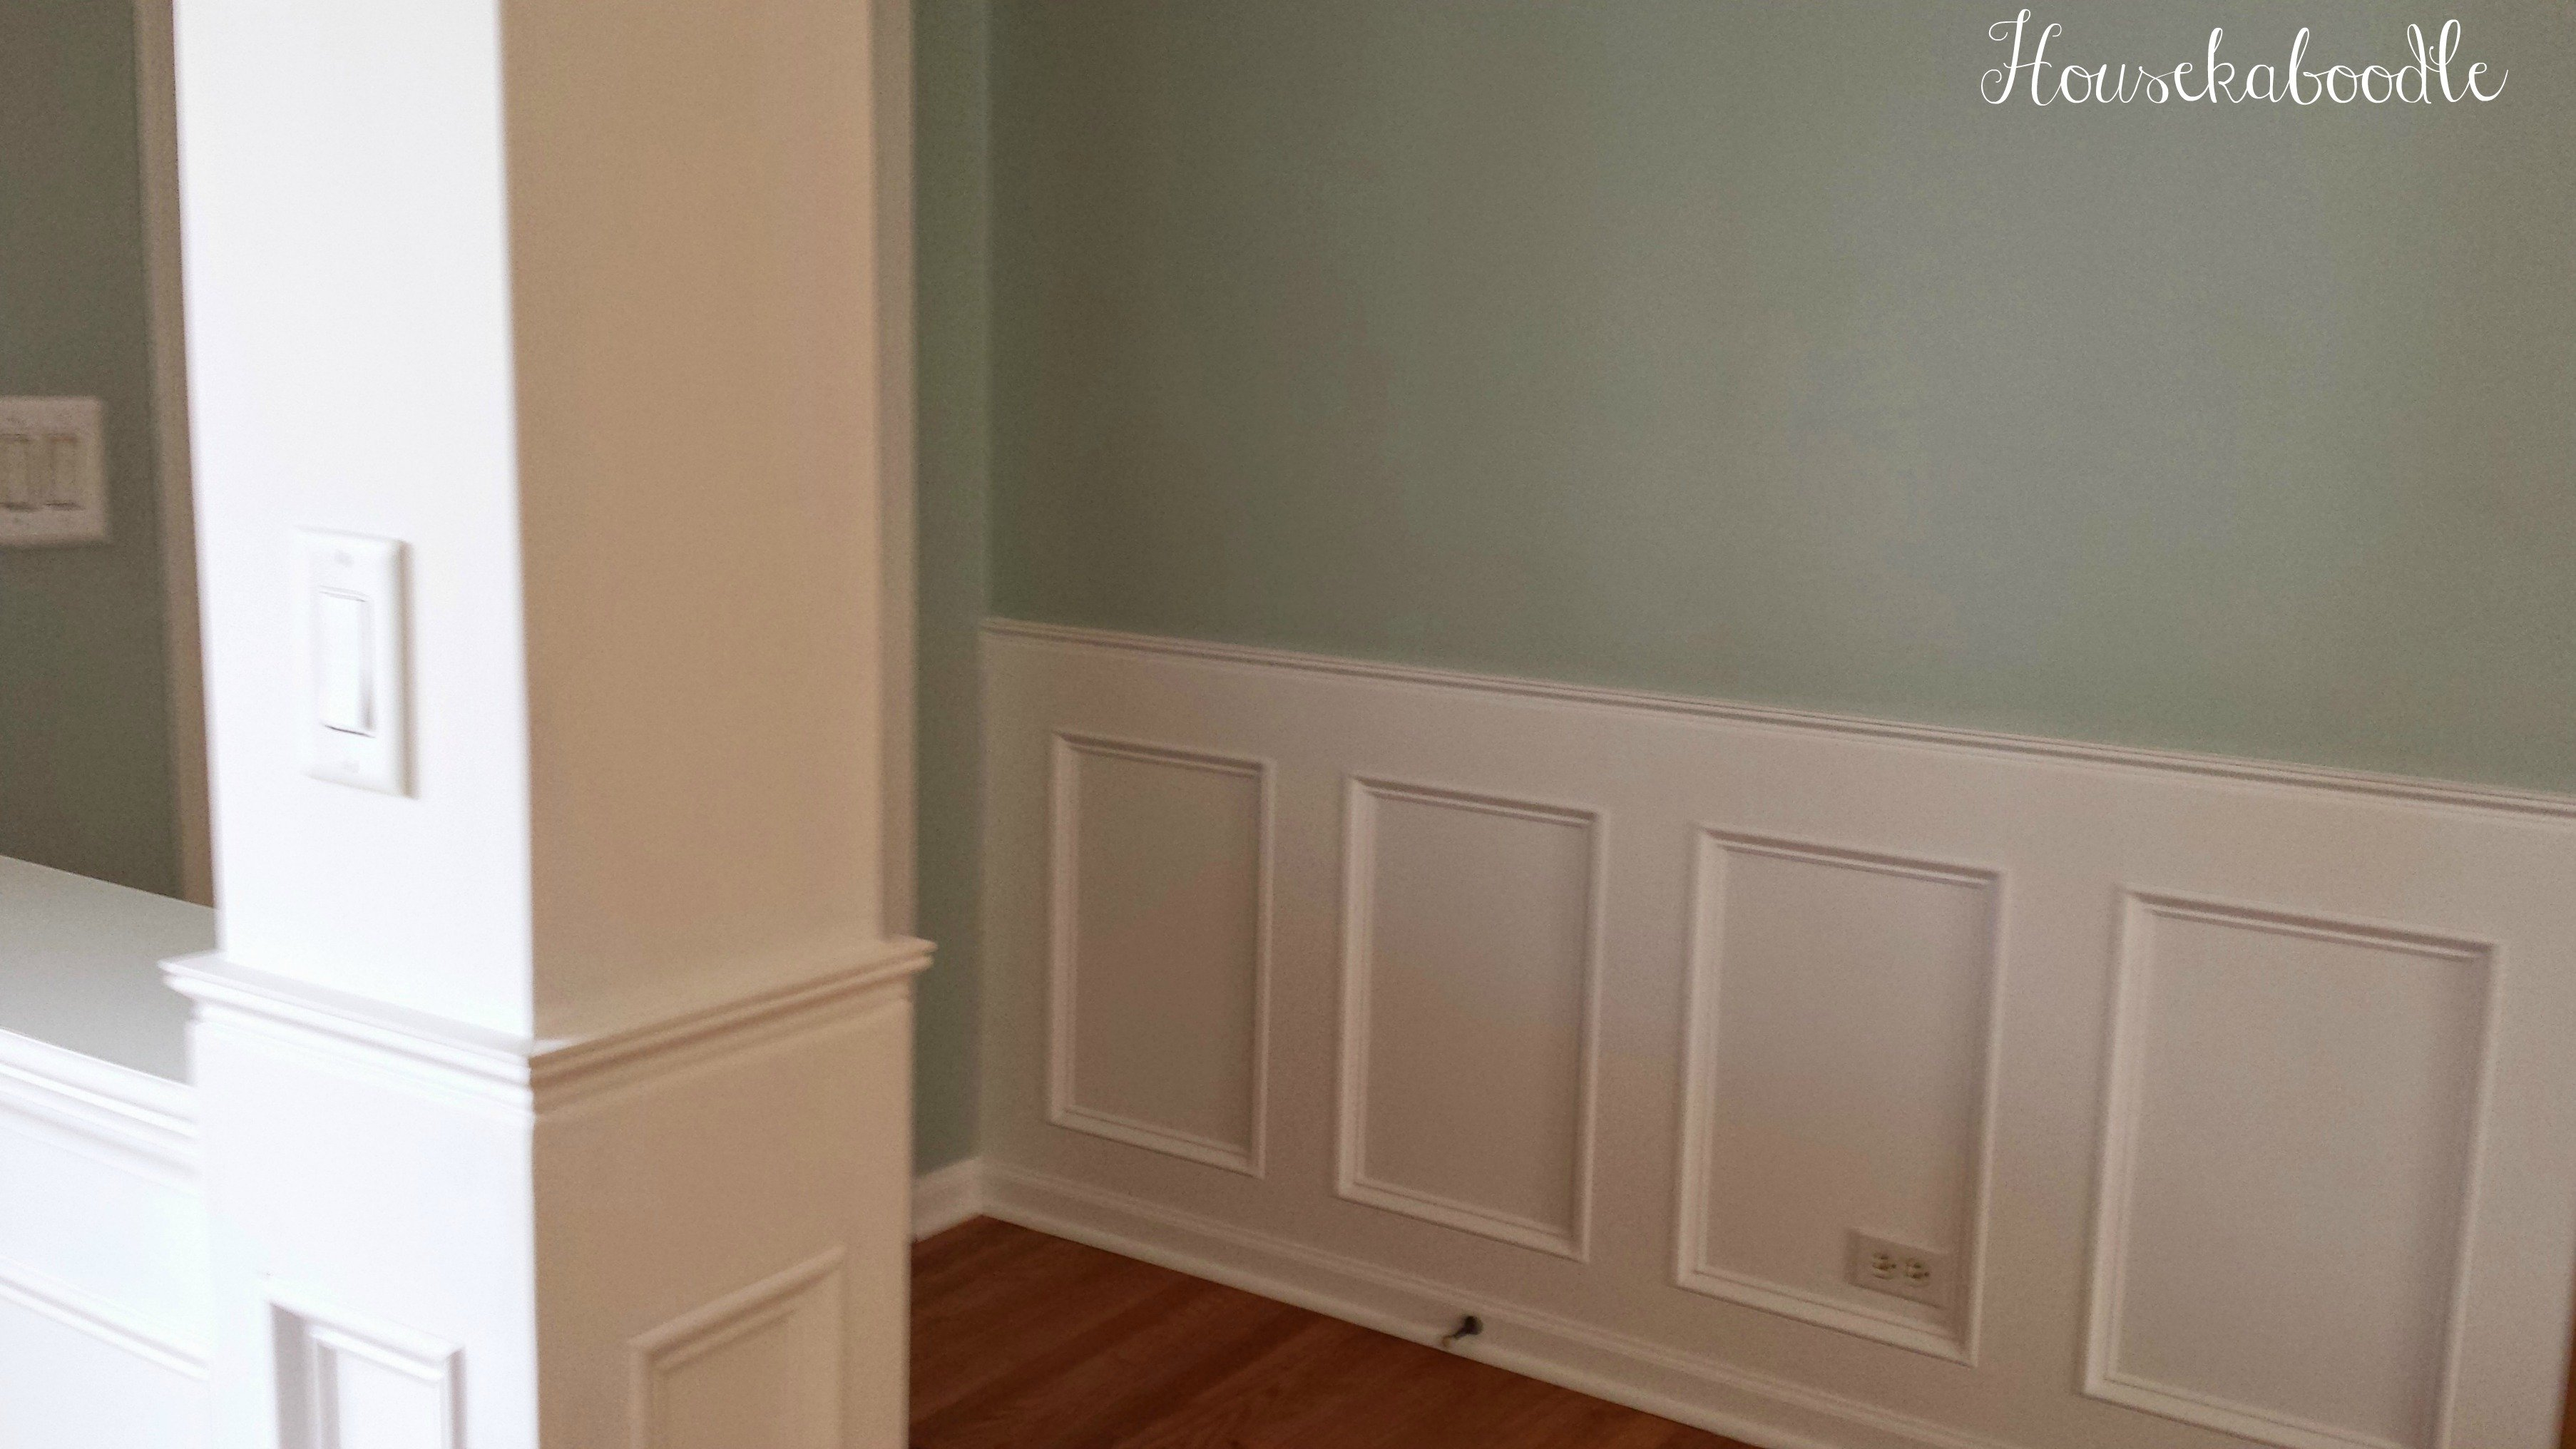 Wainscoting walls - Housekaboodle